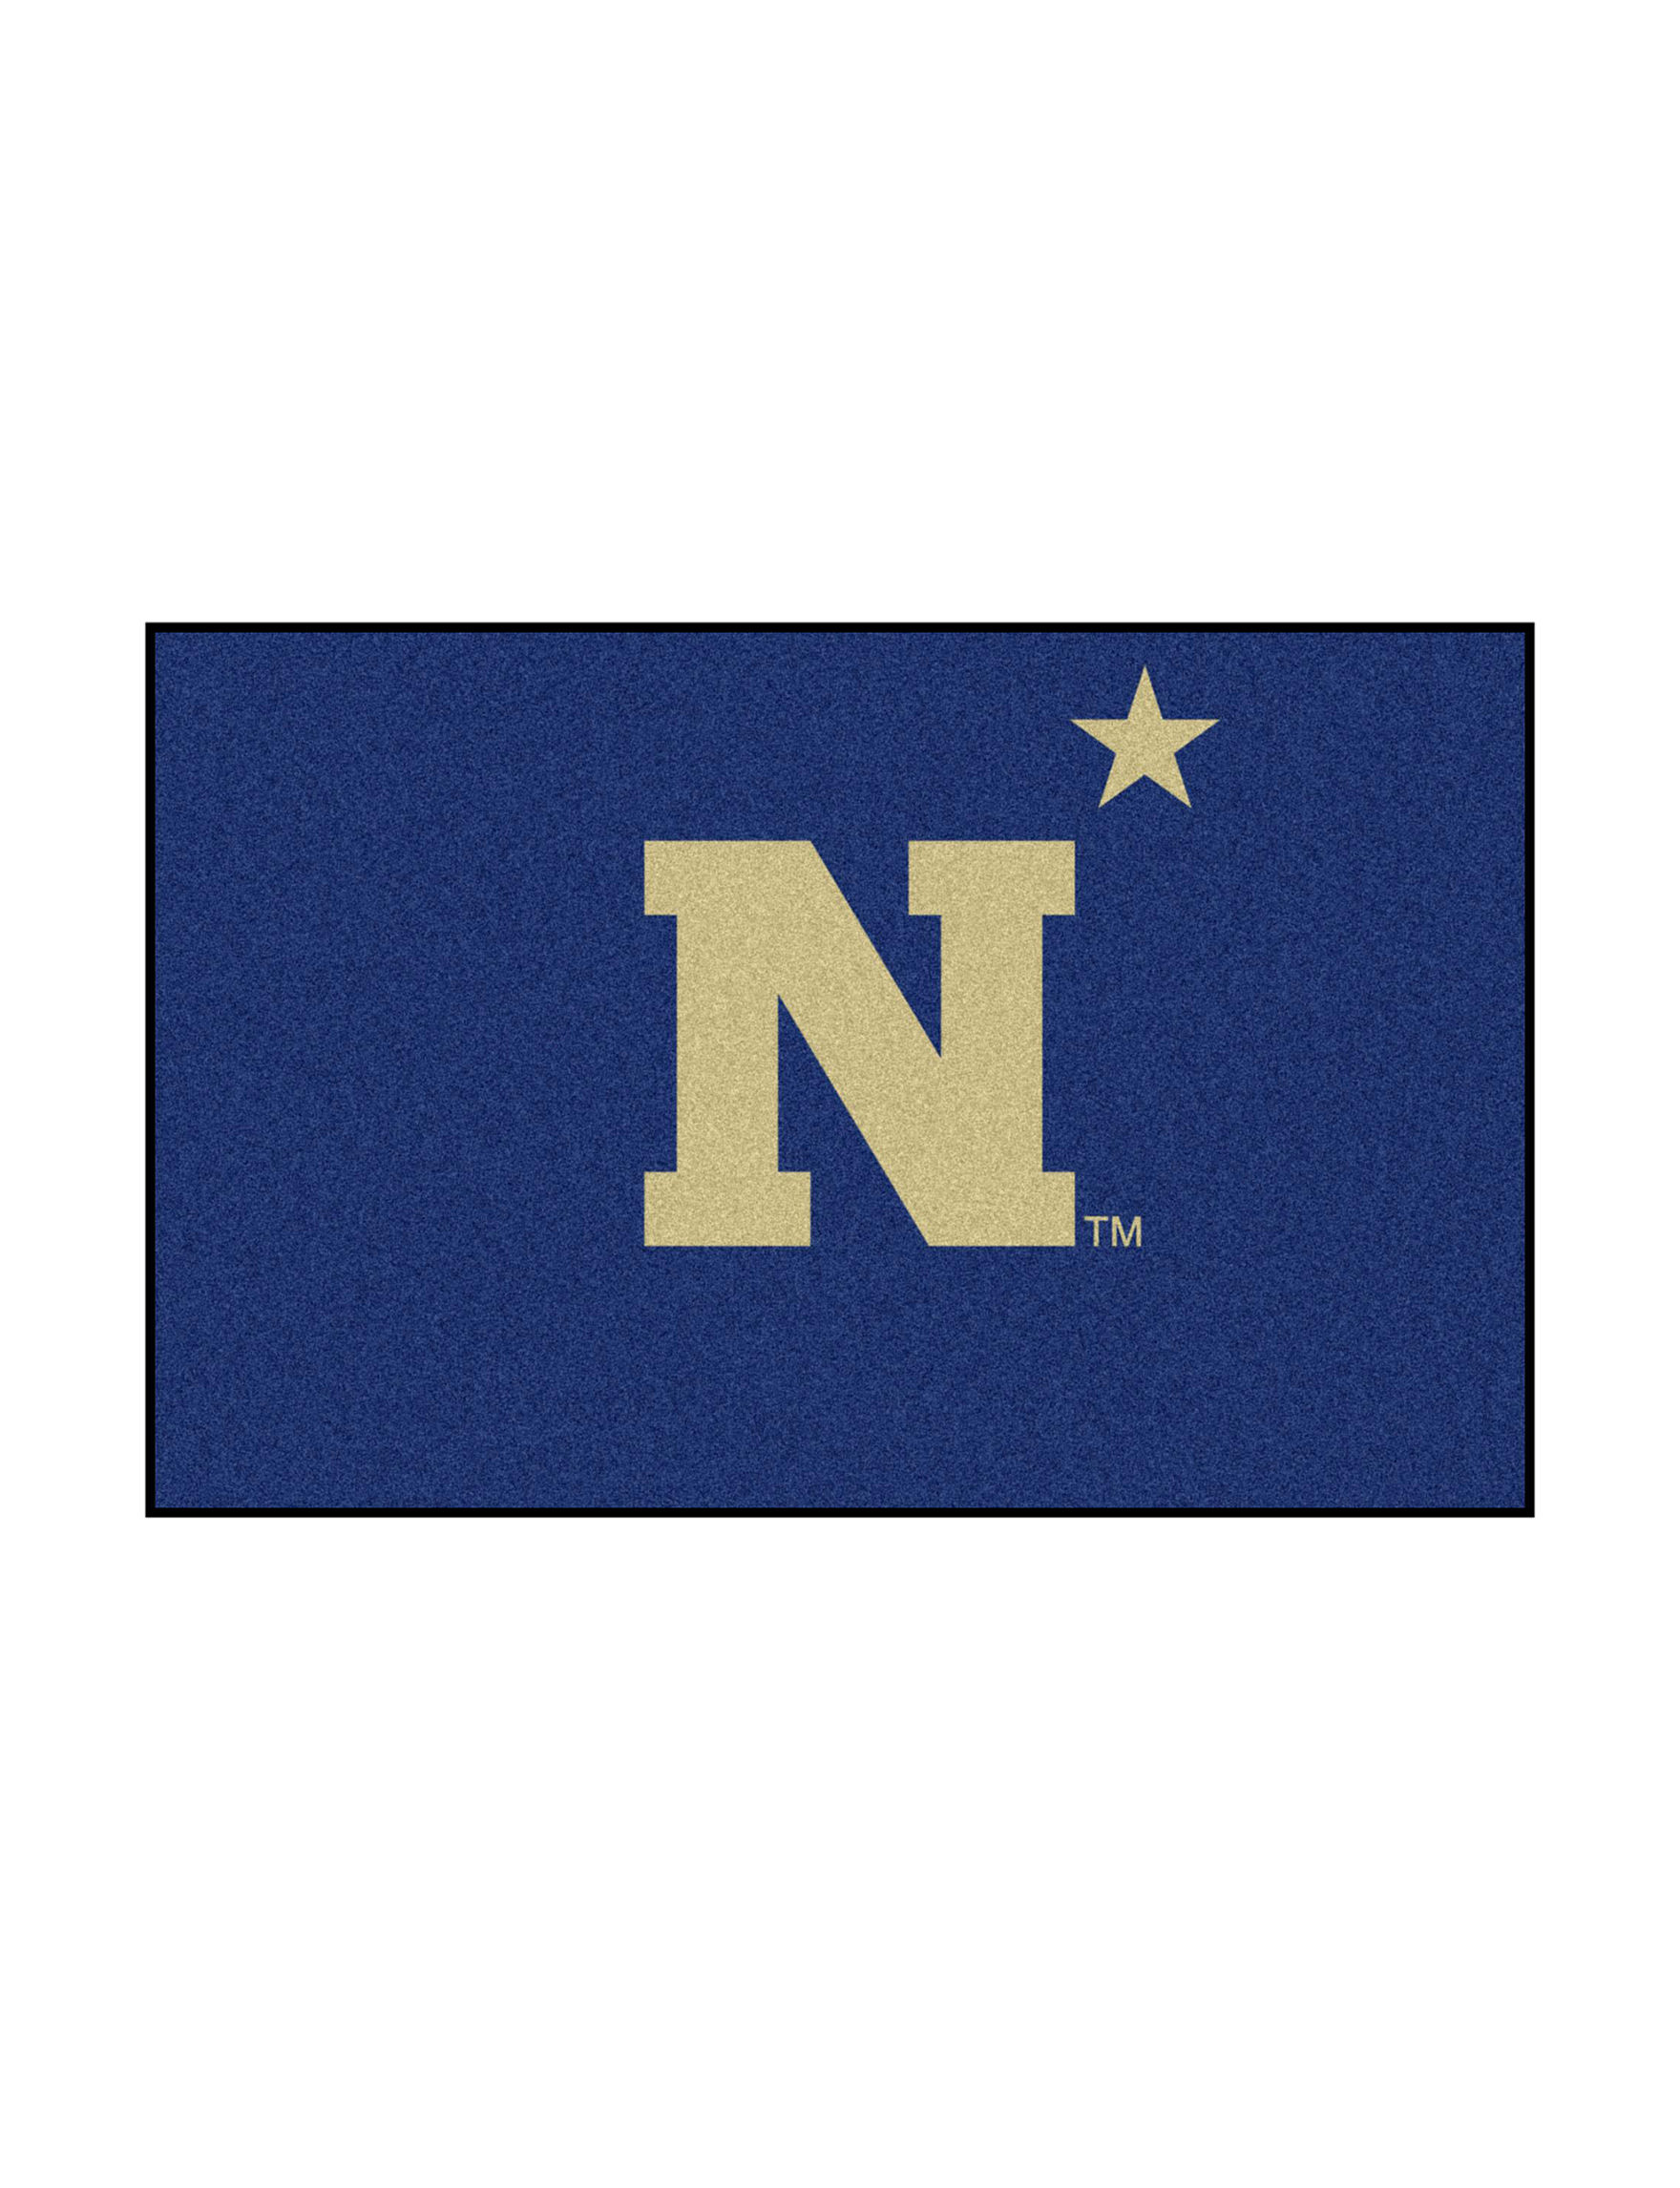 Fanmats Navy / Gold Accent Rugs Outdoor Rugs & Doormats Rugs